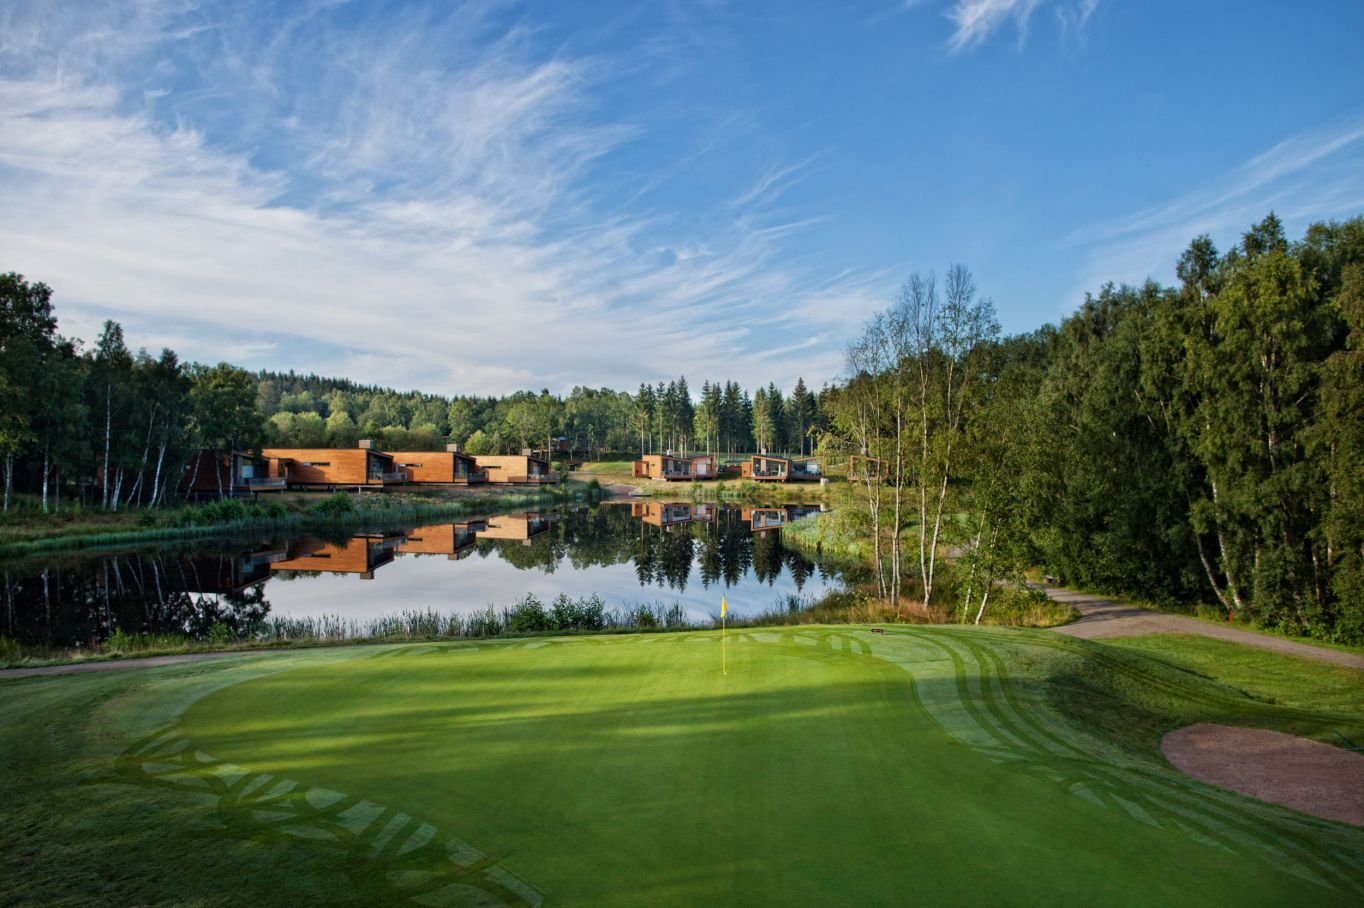 Woodlands Golfklubb - 9 hål